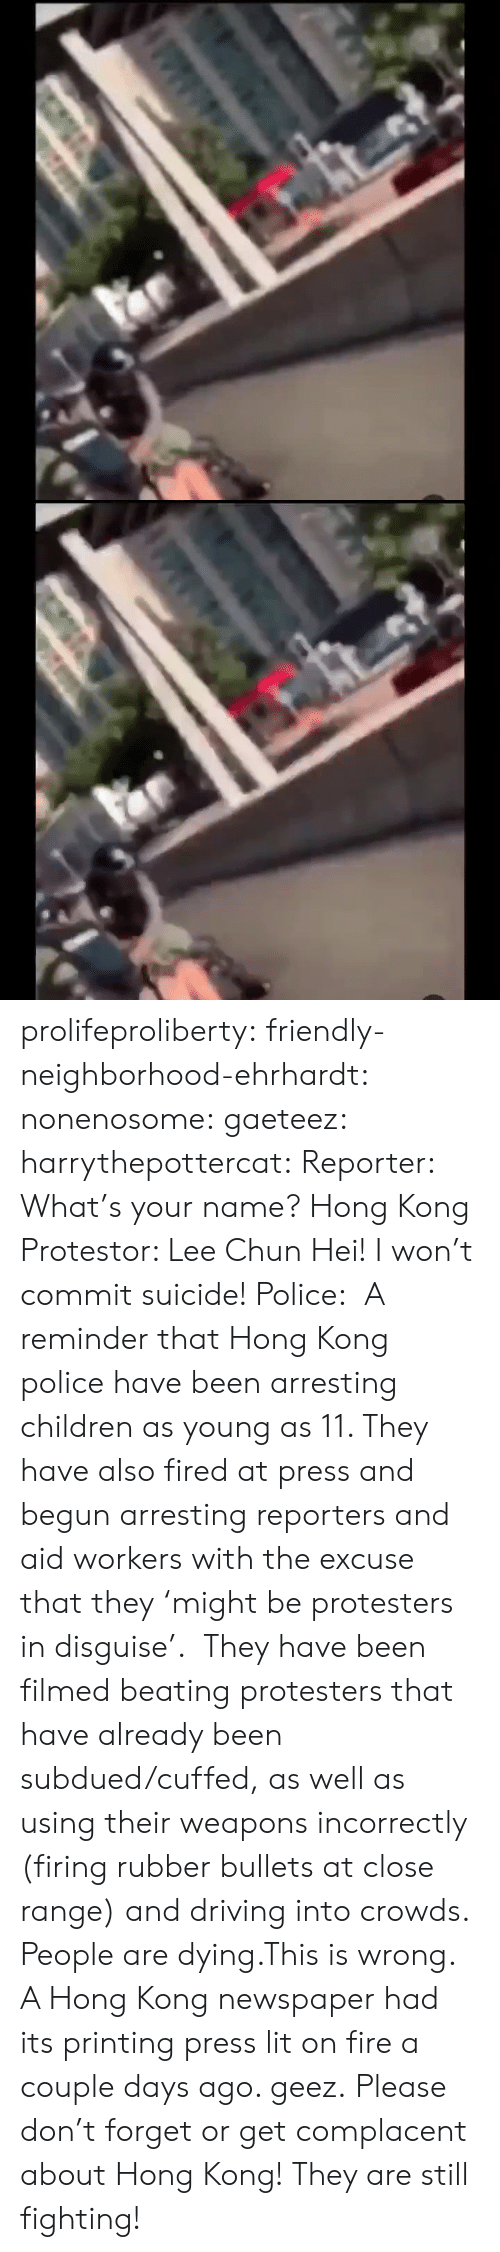 lee: के.  ॥ल prolifeproliberty:  friendly-neighborhood-ehrhardt:  nonenosome:  gaeteez:   harrythepottercat:  Reporter: What's your name? Hong Kong Protestor: Lee Chun Hei! I won't commit suicide! Police:    A reminder that Hong Kong police have been arresting children as young as 11. They have also fired at press and begun arresting reporters and aid workers with the excuse that they 'might be protesters in disguise'.  They have been filmed beating protesters that have already been subdued/cuffed, as well as using their weapons incorrectly (firing rubber bullets at close range) and driving into crowds.  People are dying.This is wrong.    A Hong Kong newspaper had its printing press lit on fire a couple days ago.   geez.   Please don't forget or get complacent about Hong Kong! They are still fighting!